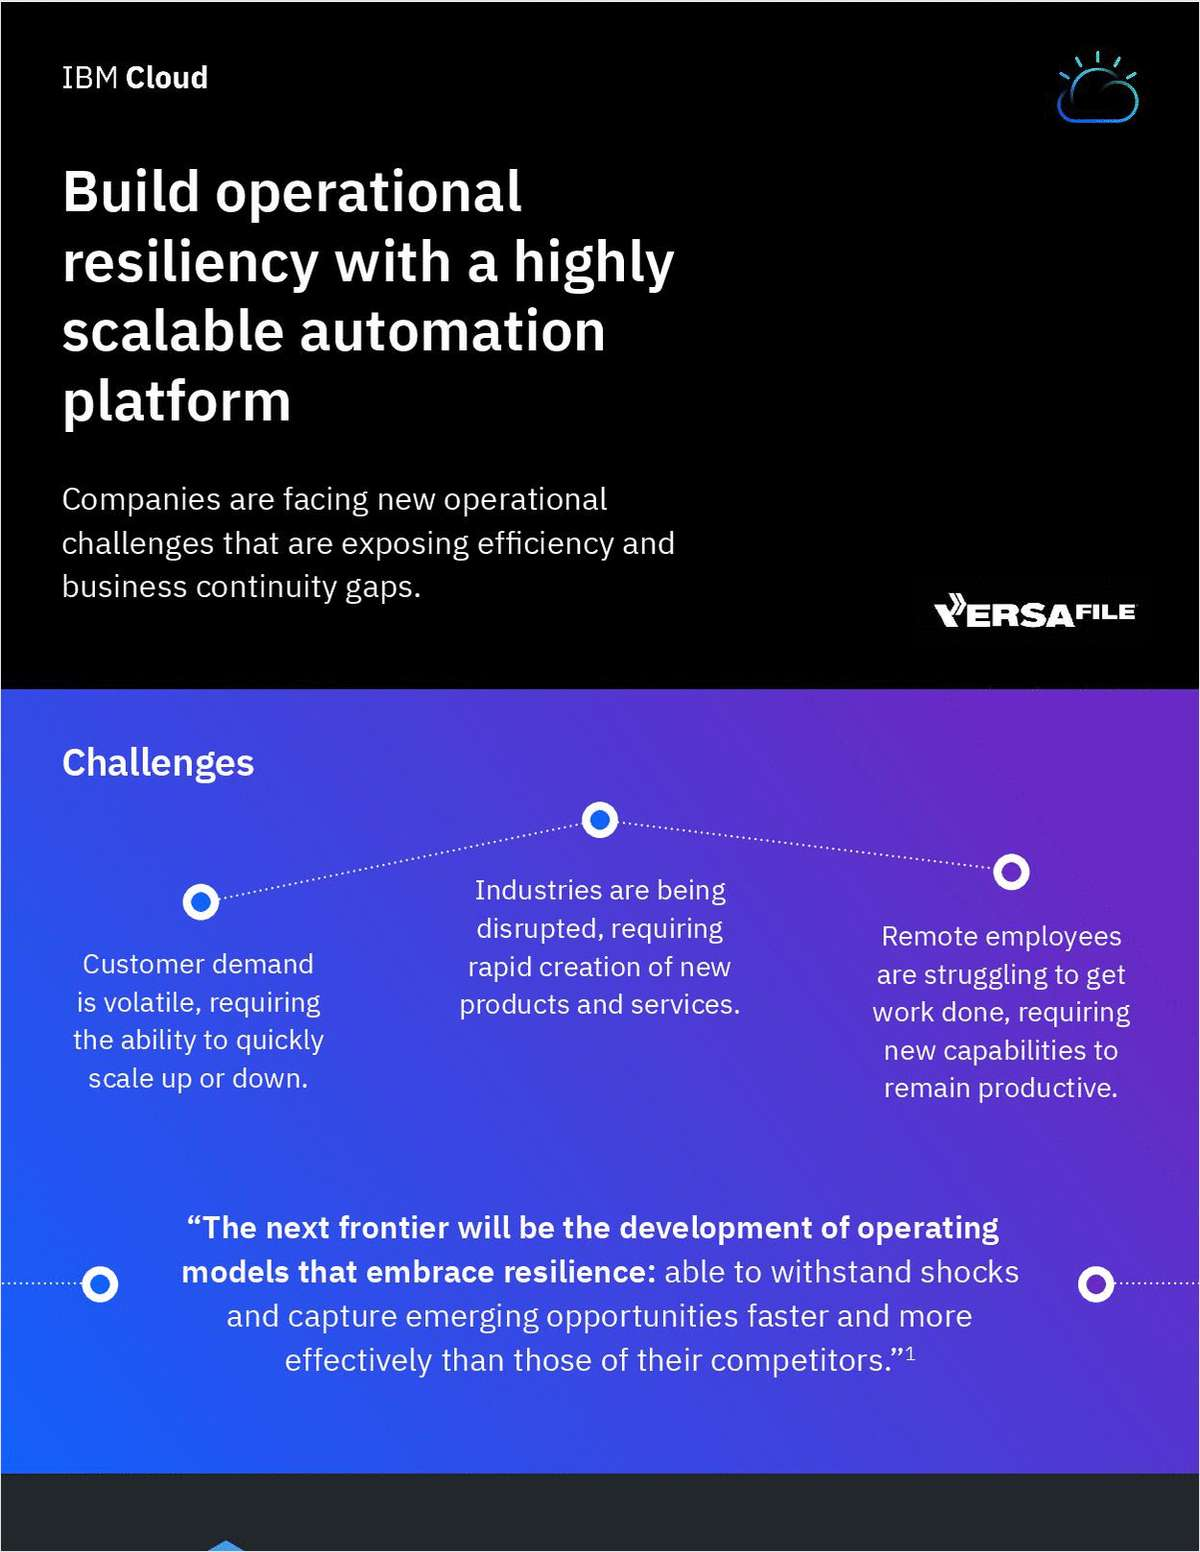 Build operational resiliency with a highly scalable automation platform